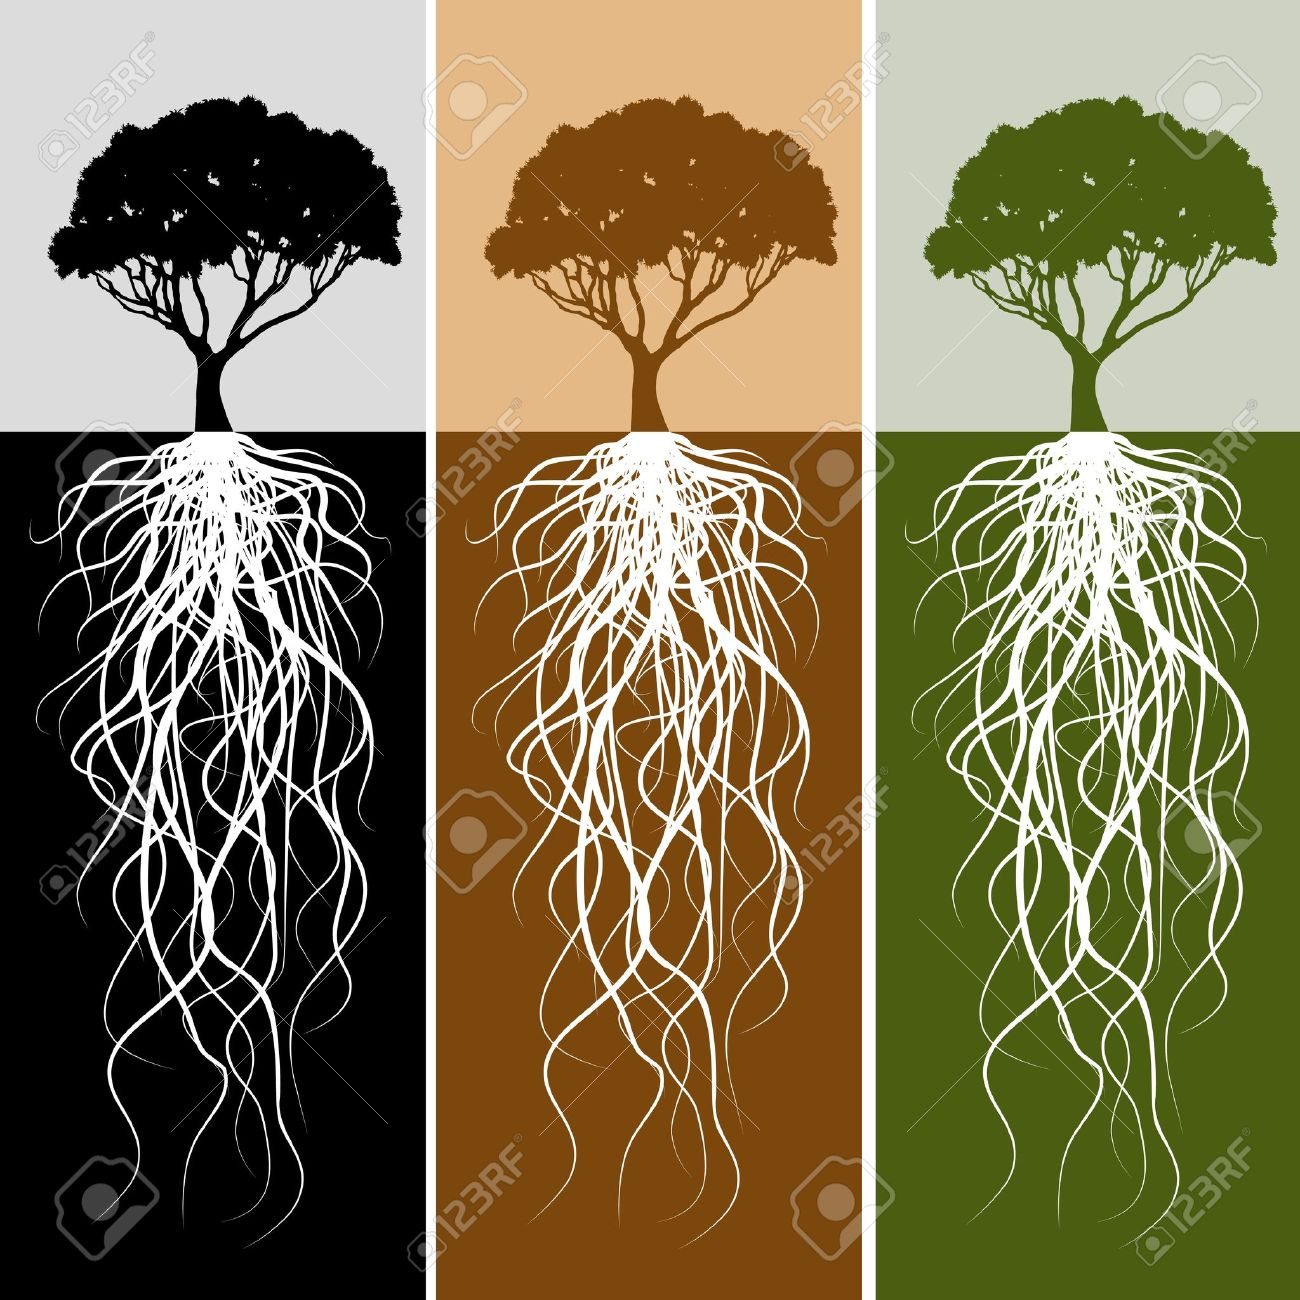 1300x1300 Tree Root Stock Photos, Pictures, Royalty Free Tree Root Images